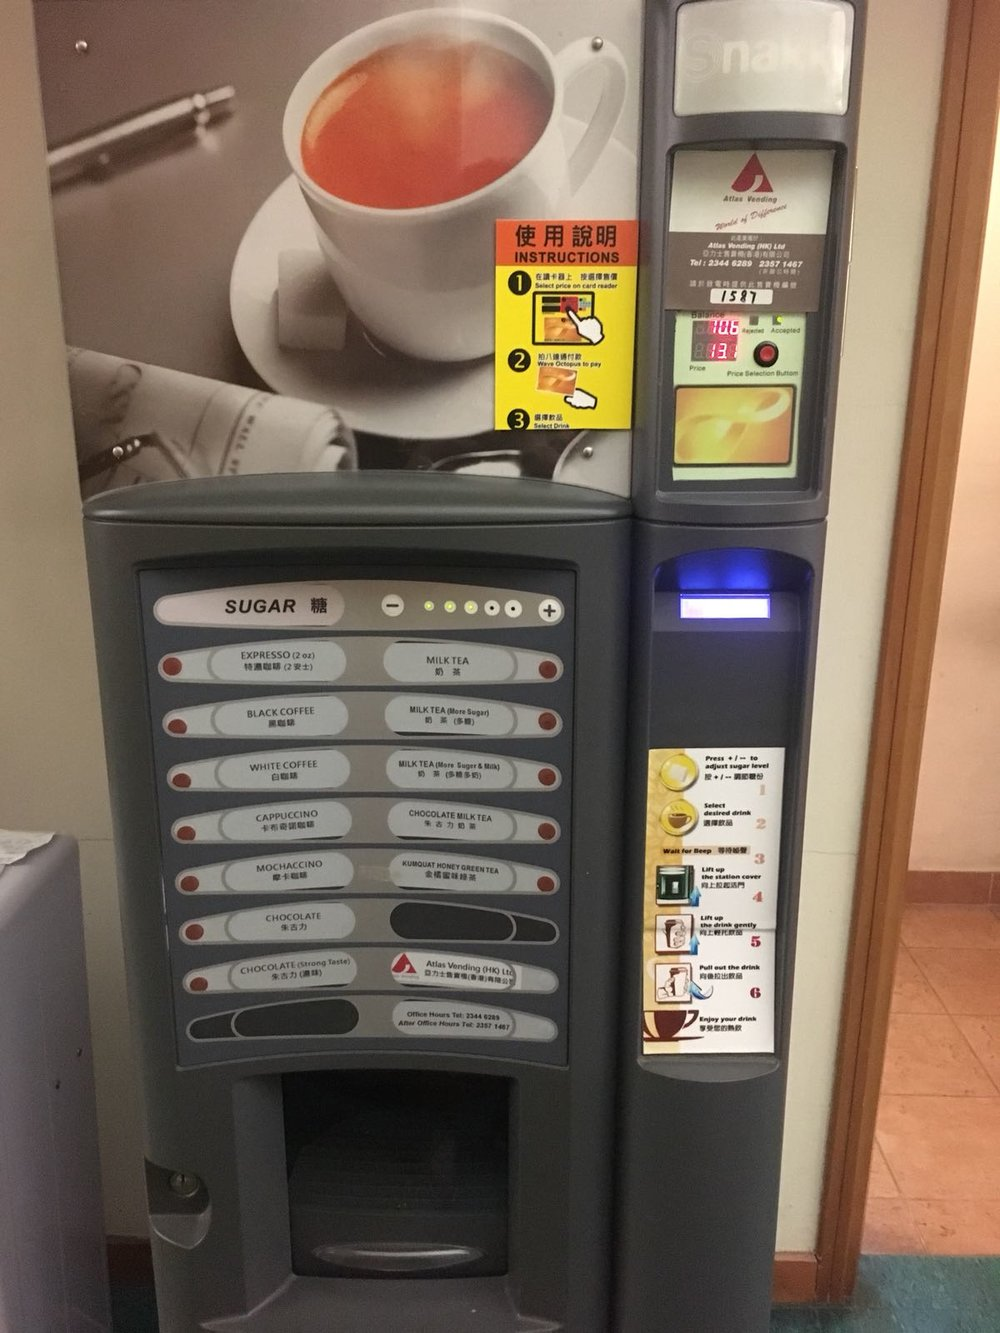 Freshup, vending machine hk, food, beverage, smart retail, convenient, vending services, hospitals, Hospital Authority, coffee machine, hot drinks